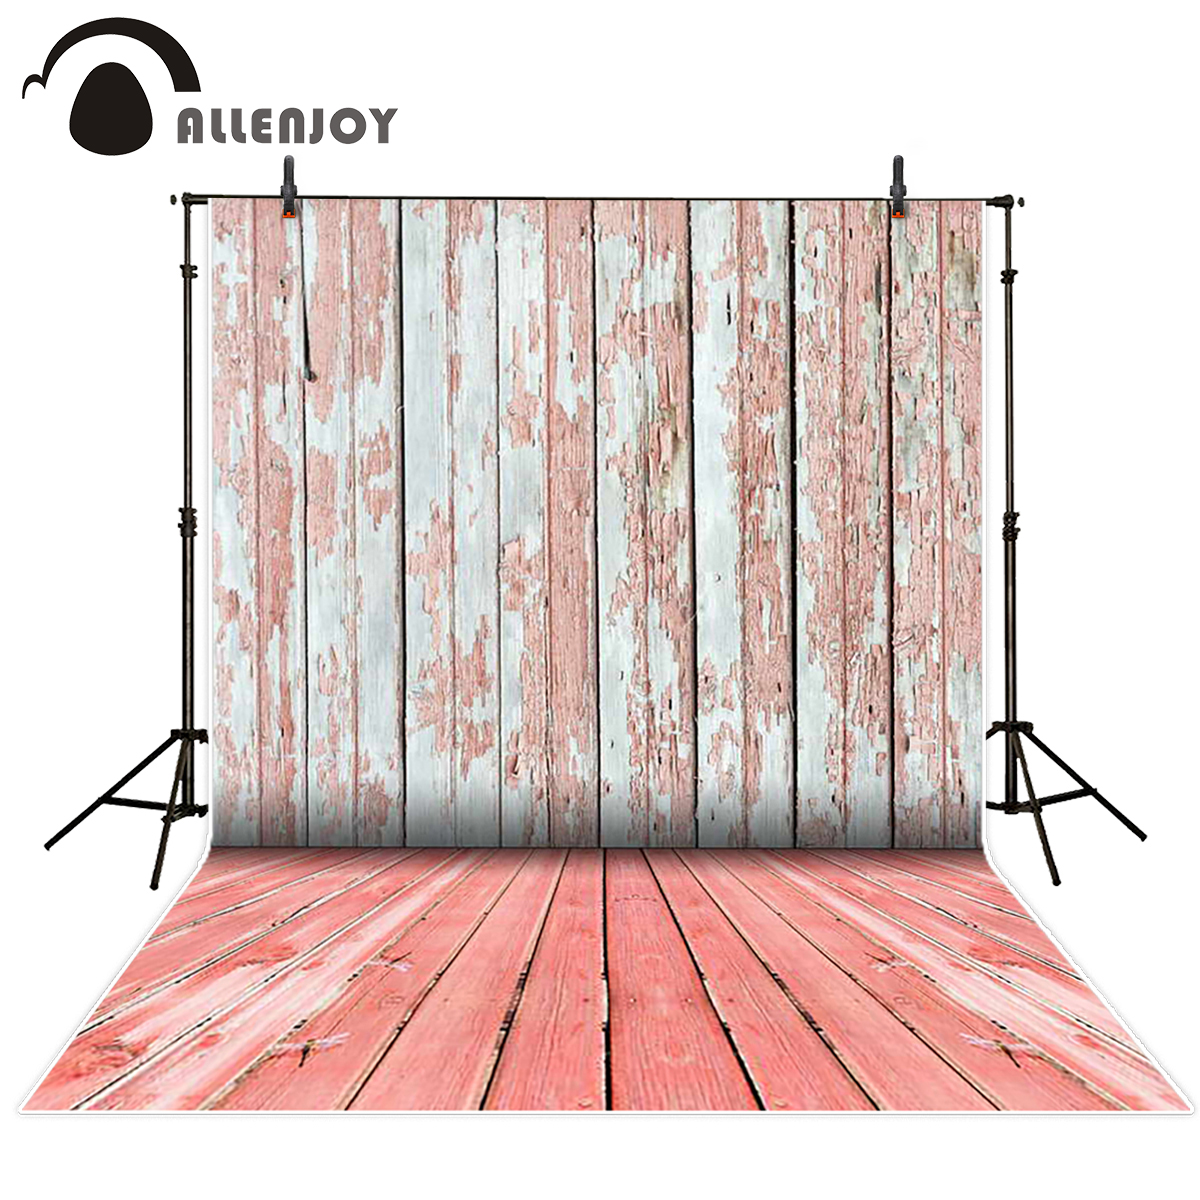 Background Photo Studio Allenjoy Professional Photography Background Clothes Hanger Jewelry Cabinet Pink Curtain Retro Table Lamp Backdrop Photobooth